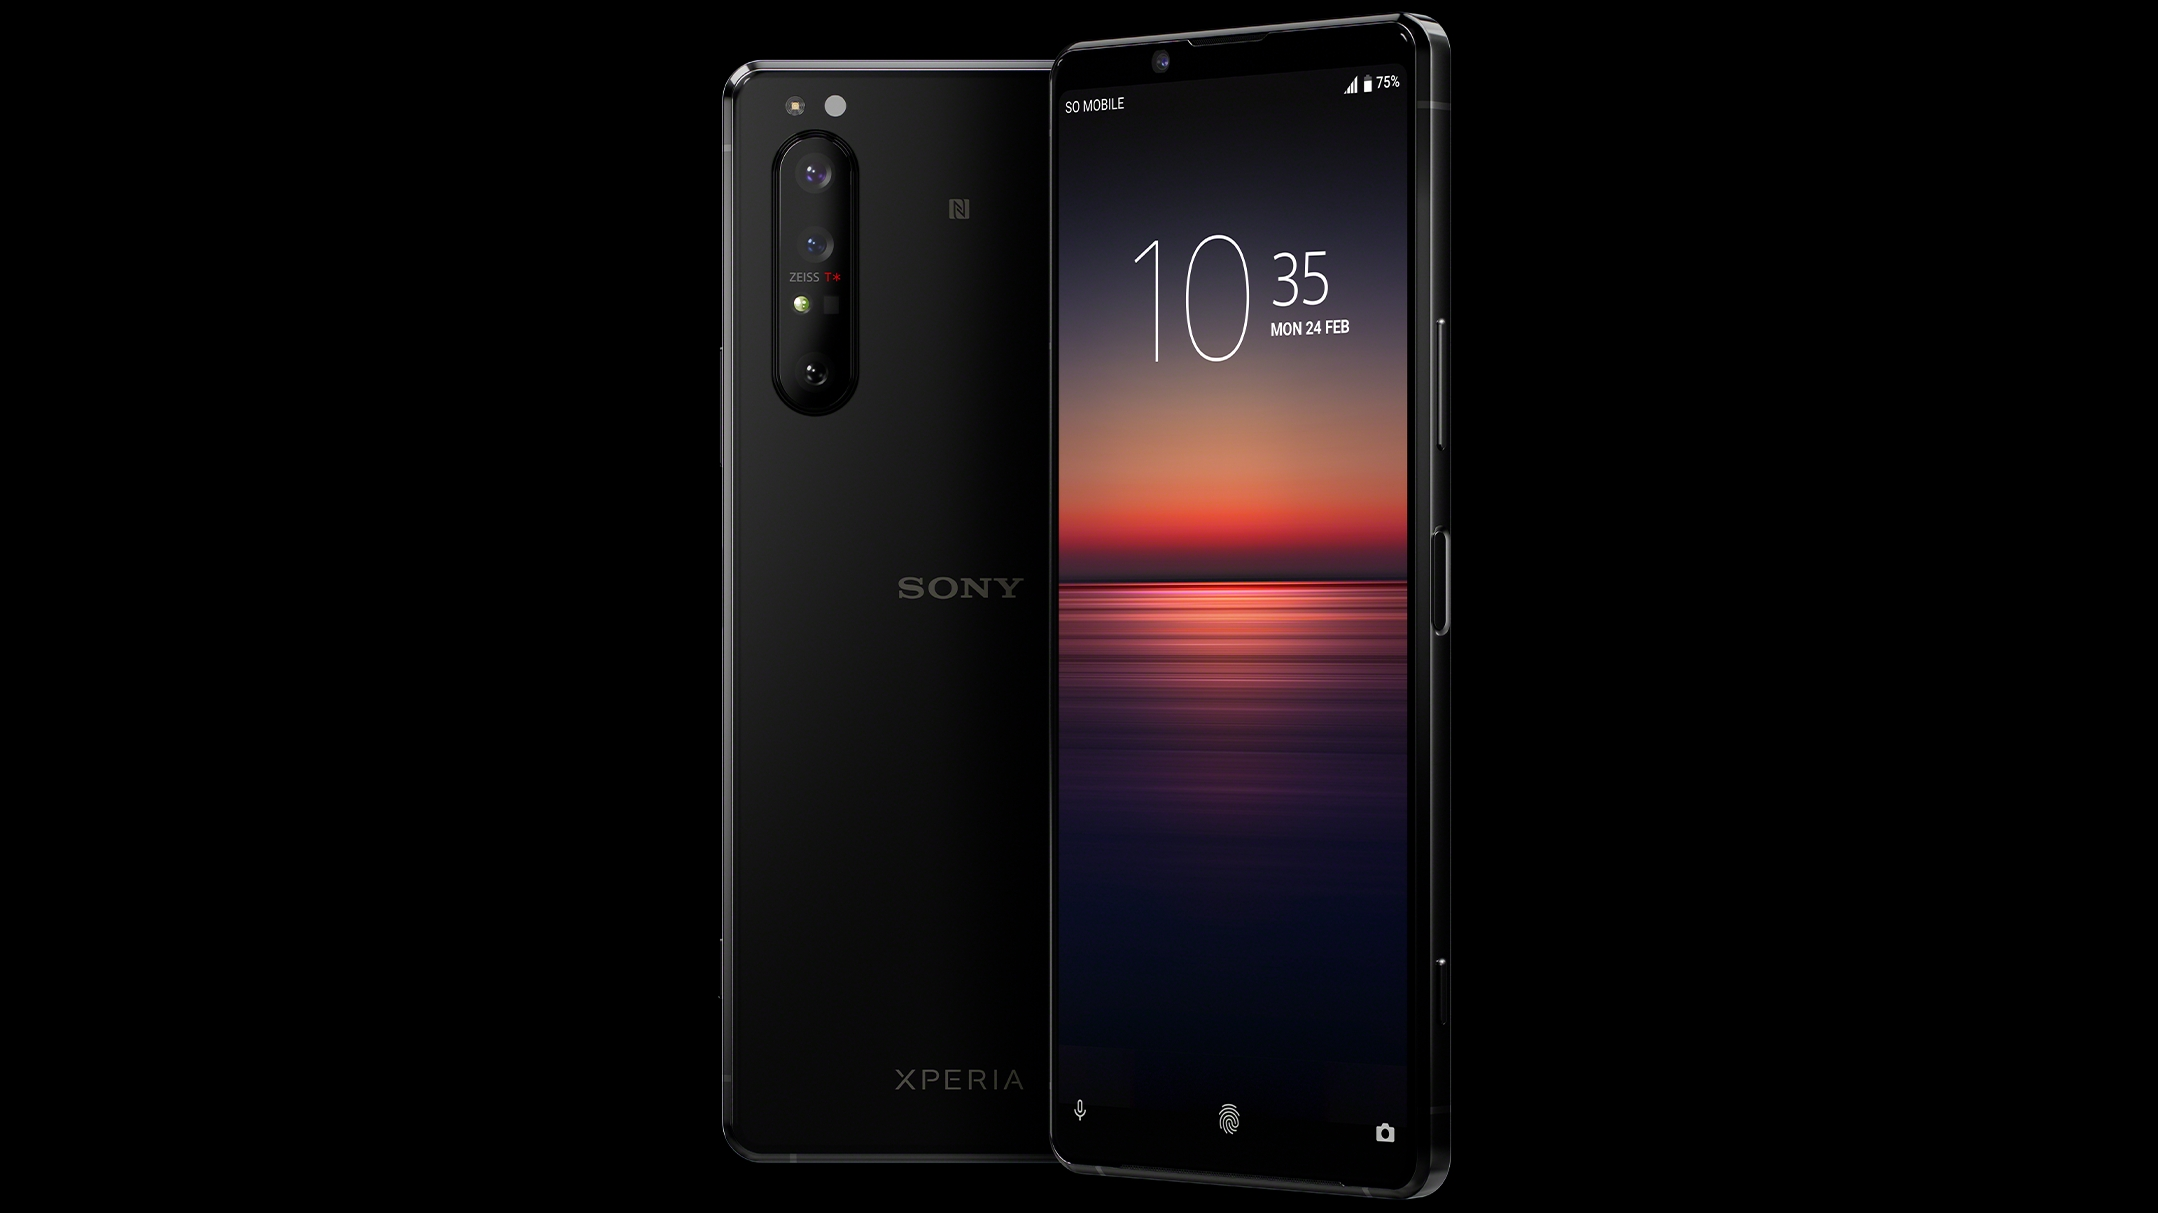 Sony Xperia 1 ll Honest Review: Pros and Cons | Advantages & Disadvantages